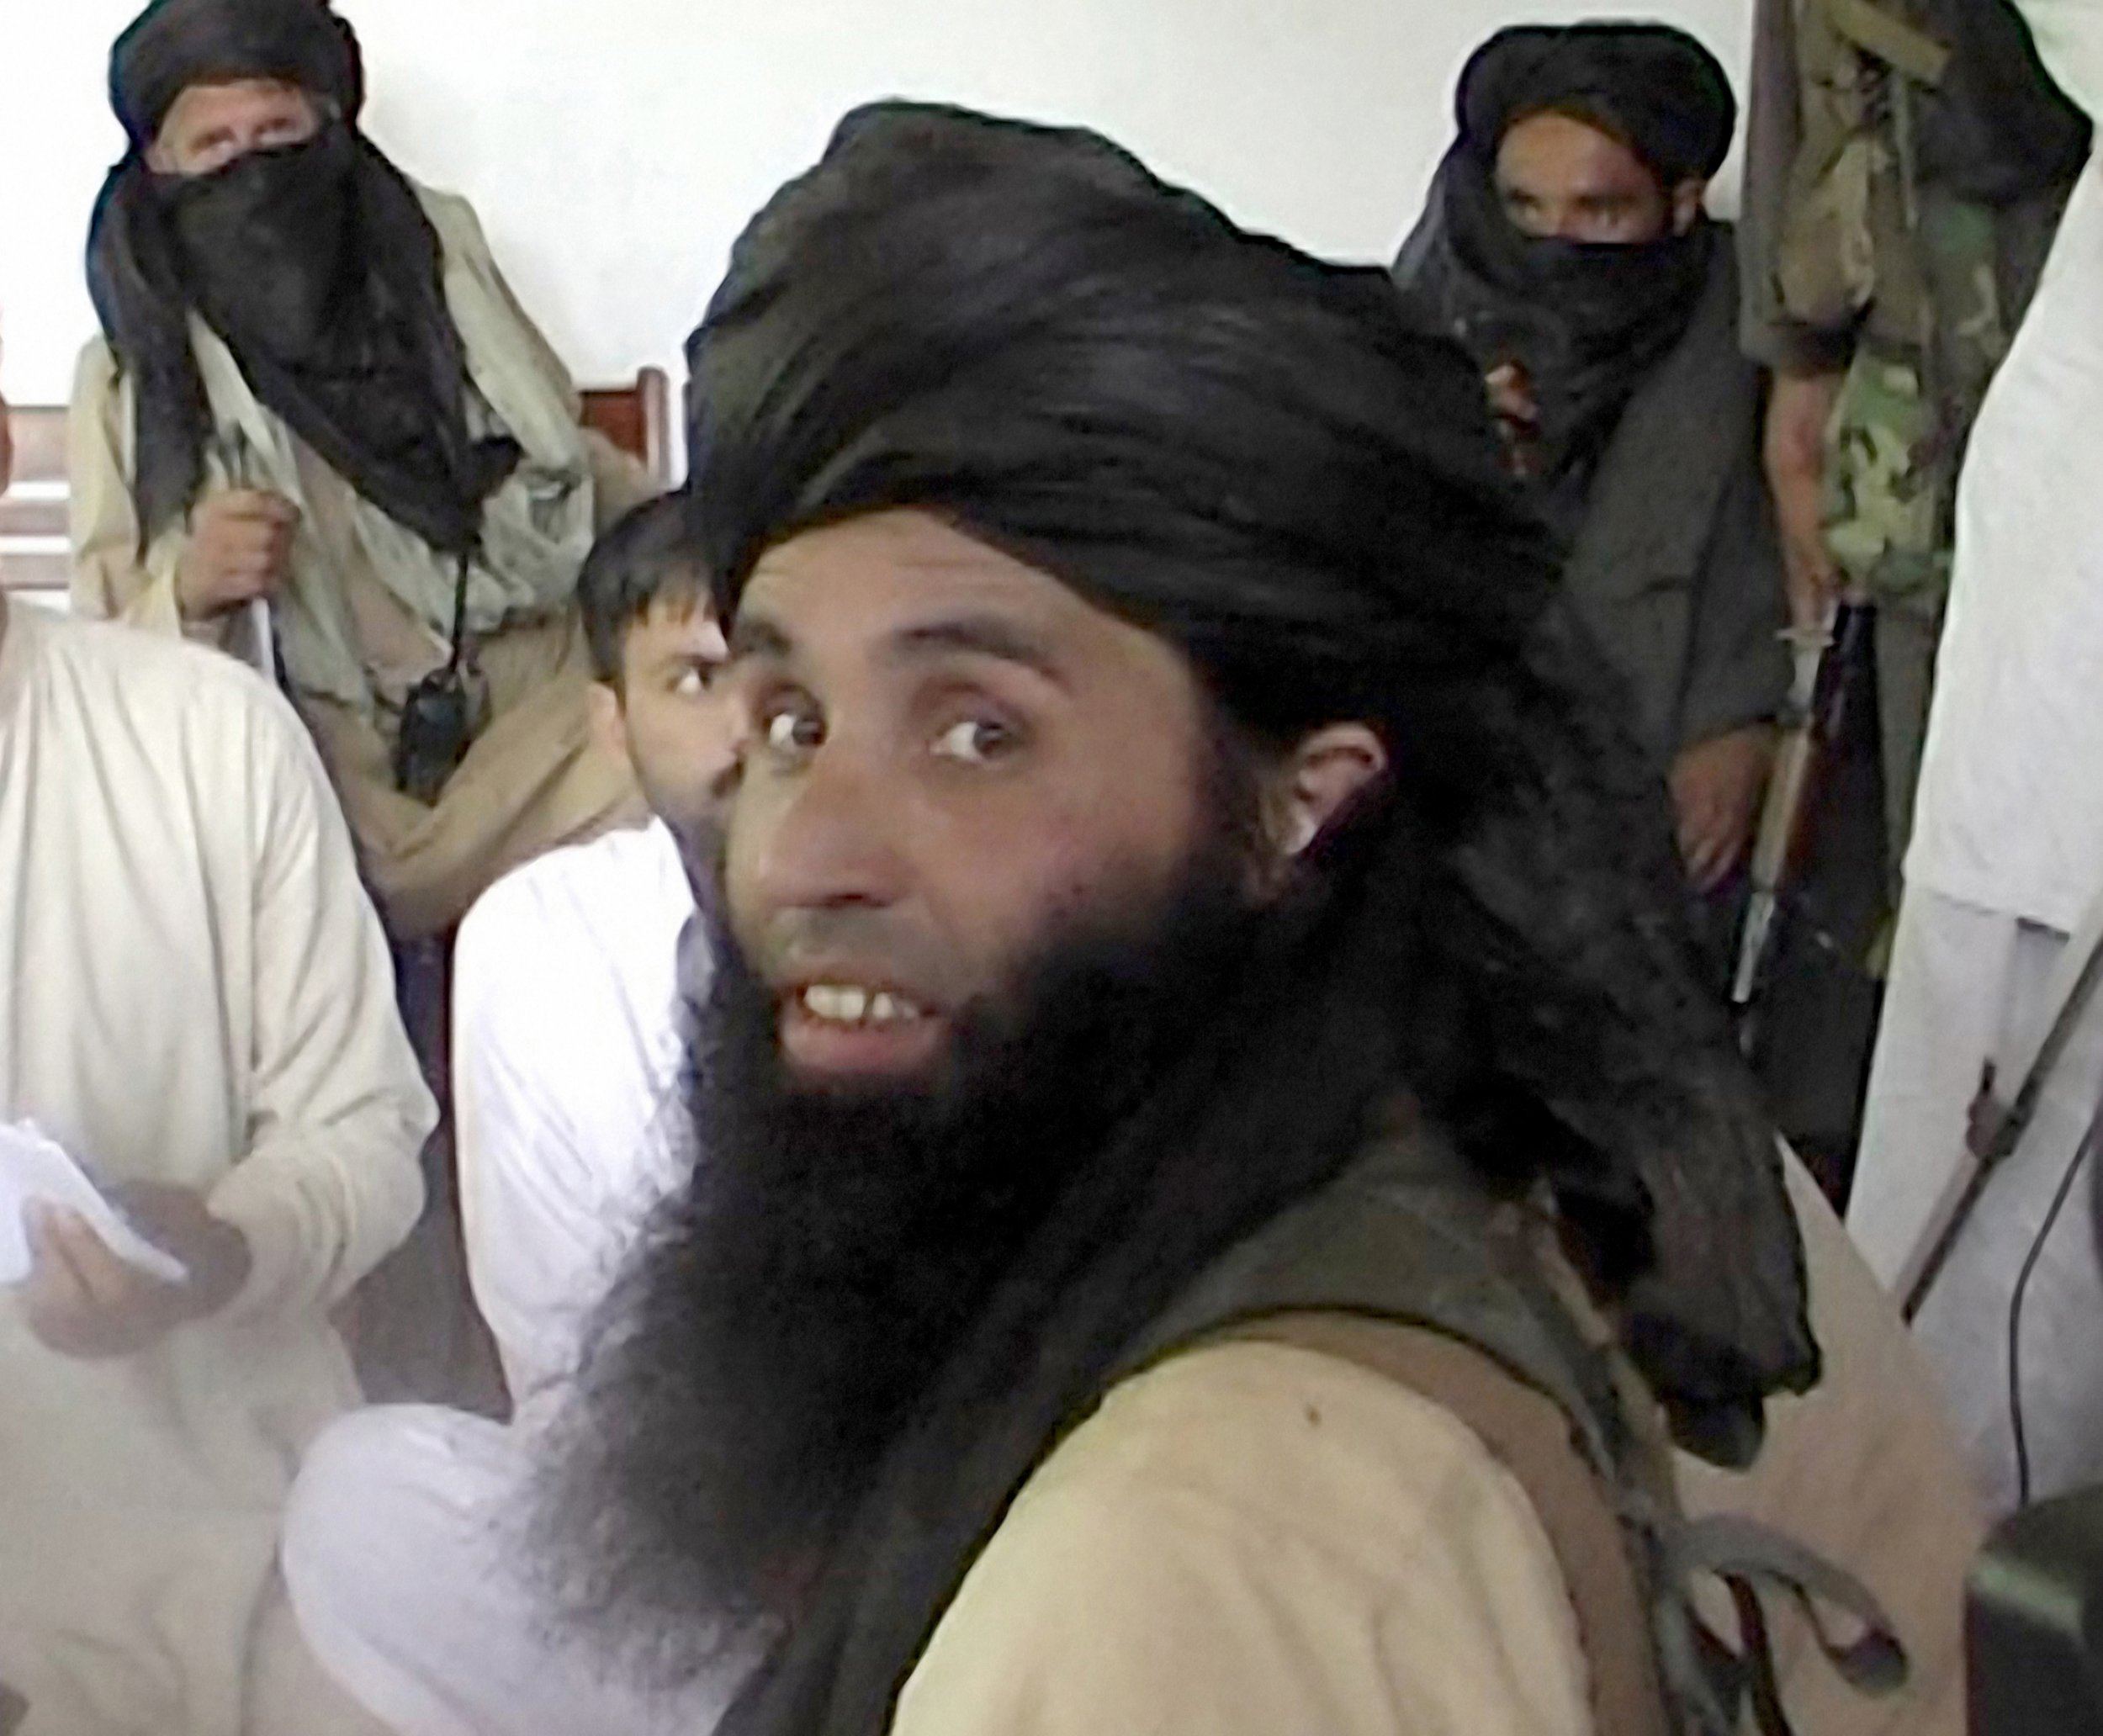 03_09_Pakistan_Taliban